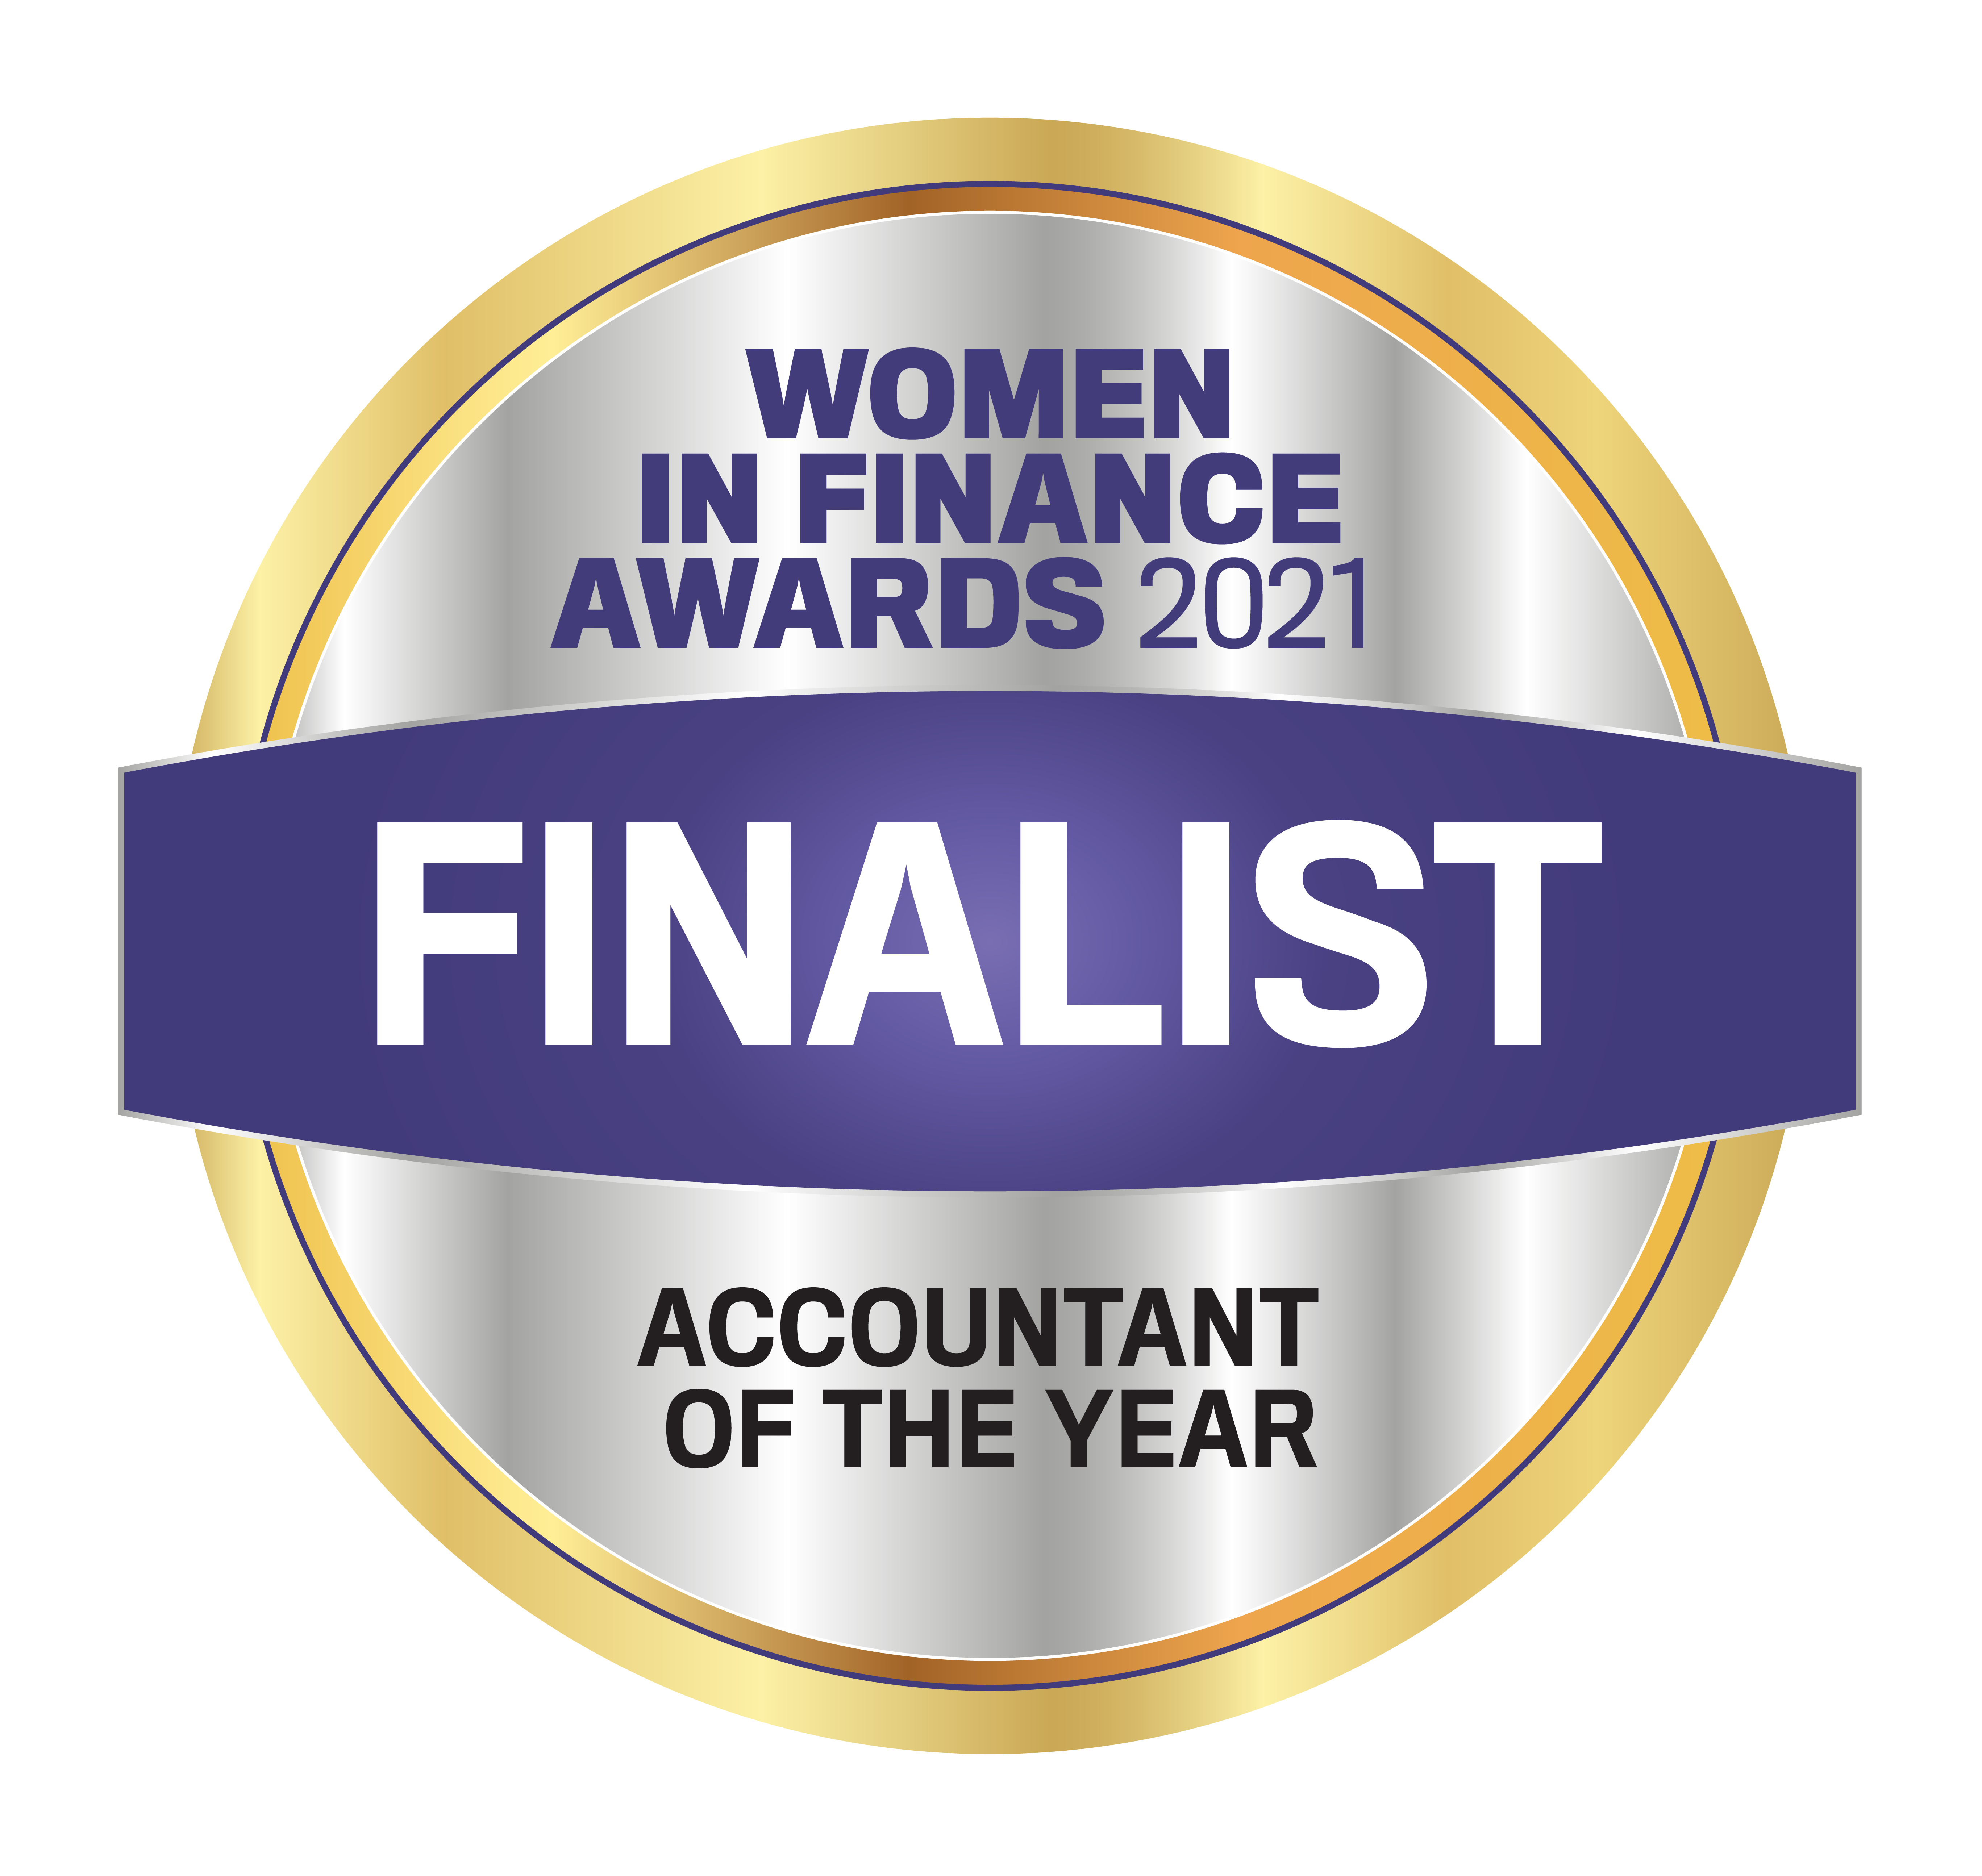 WFS accountant of the year 2021 finalist award